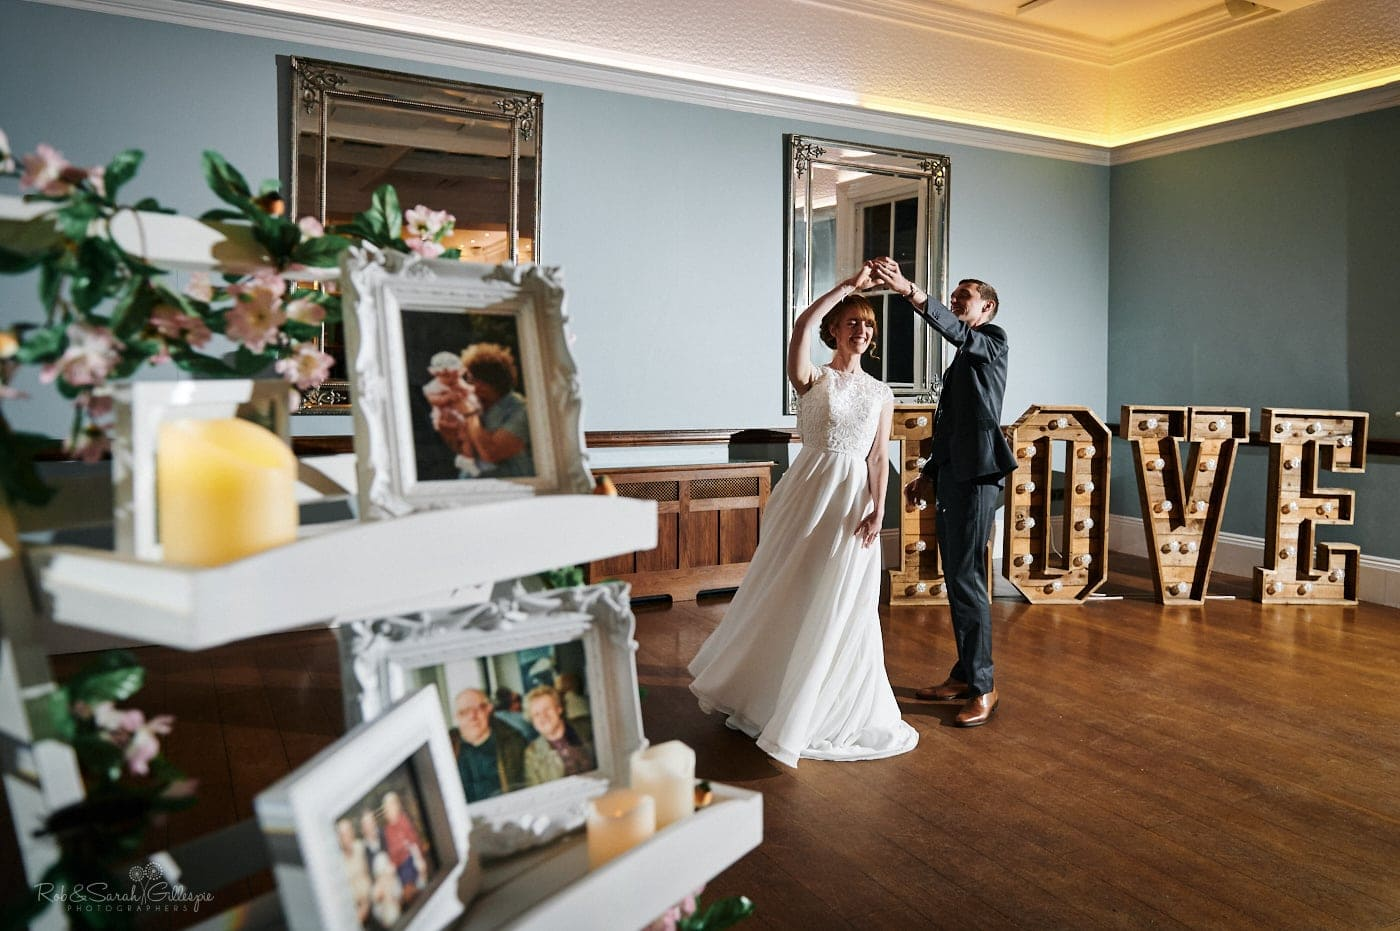 Bride and groom first dance in Ballroom at Pendrell Hall